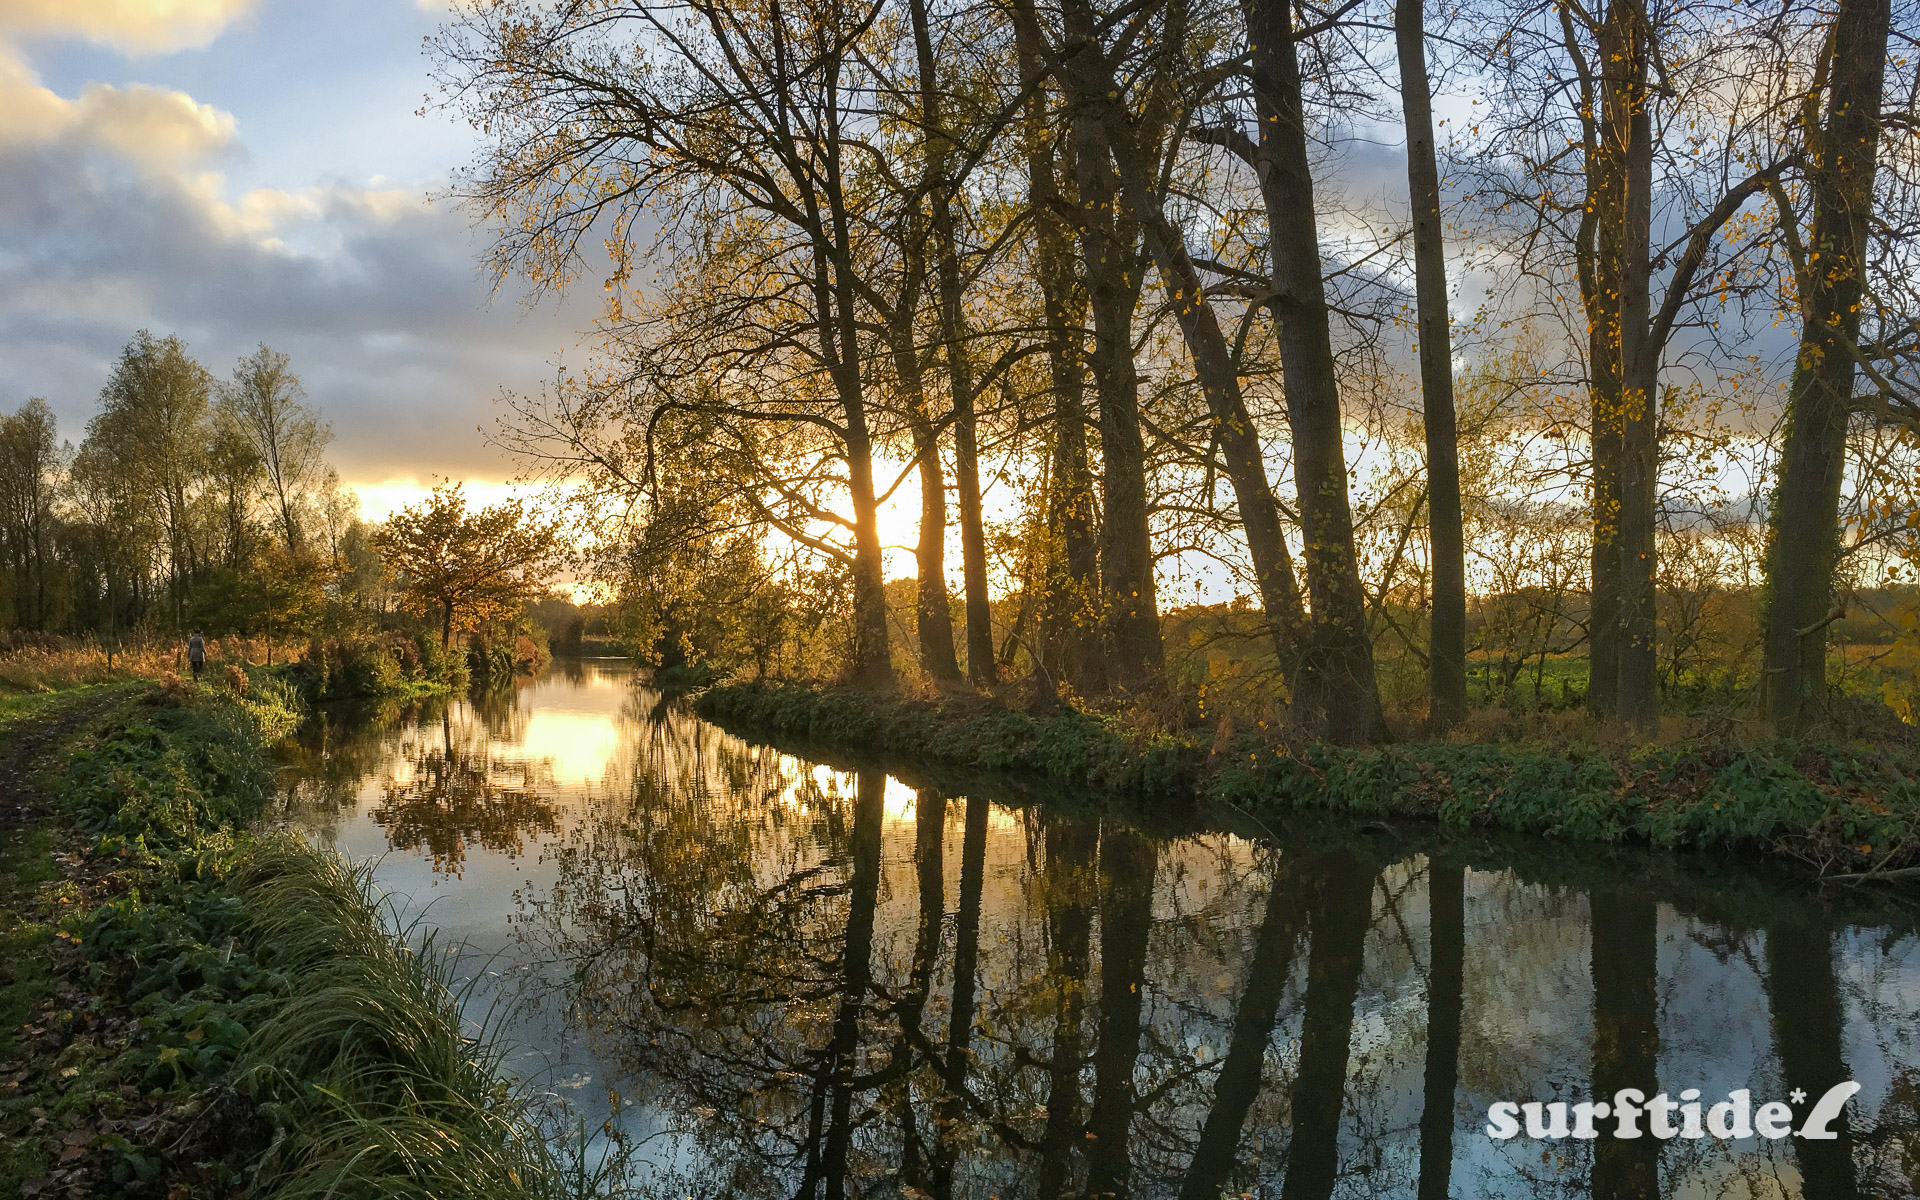 Reflection of the trees on the still water of the River Stort.